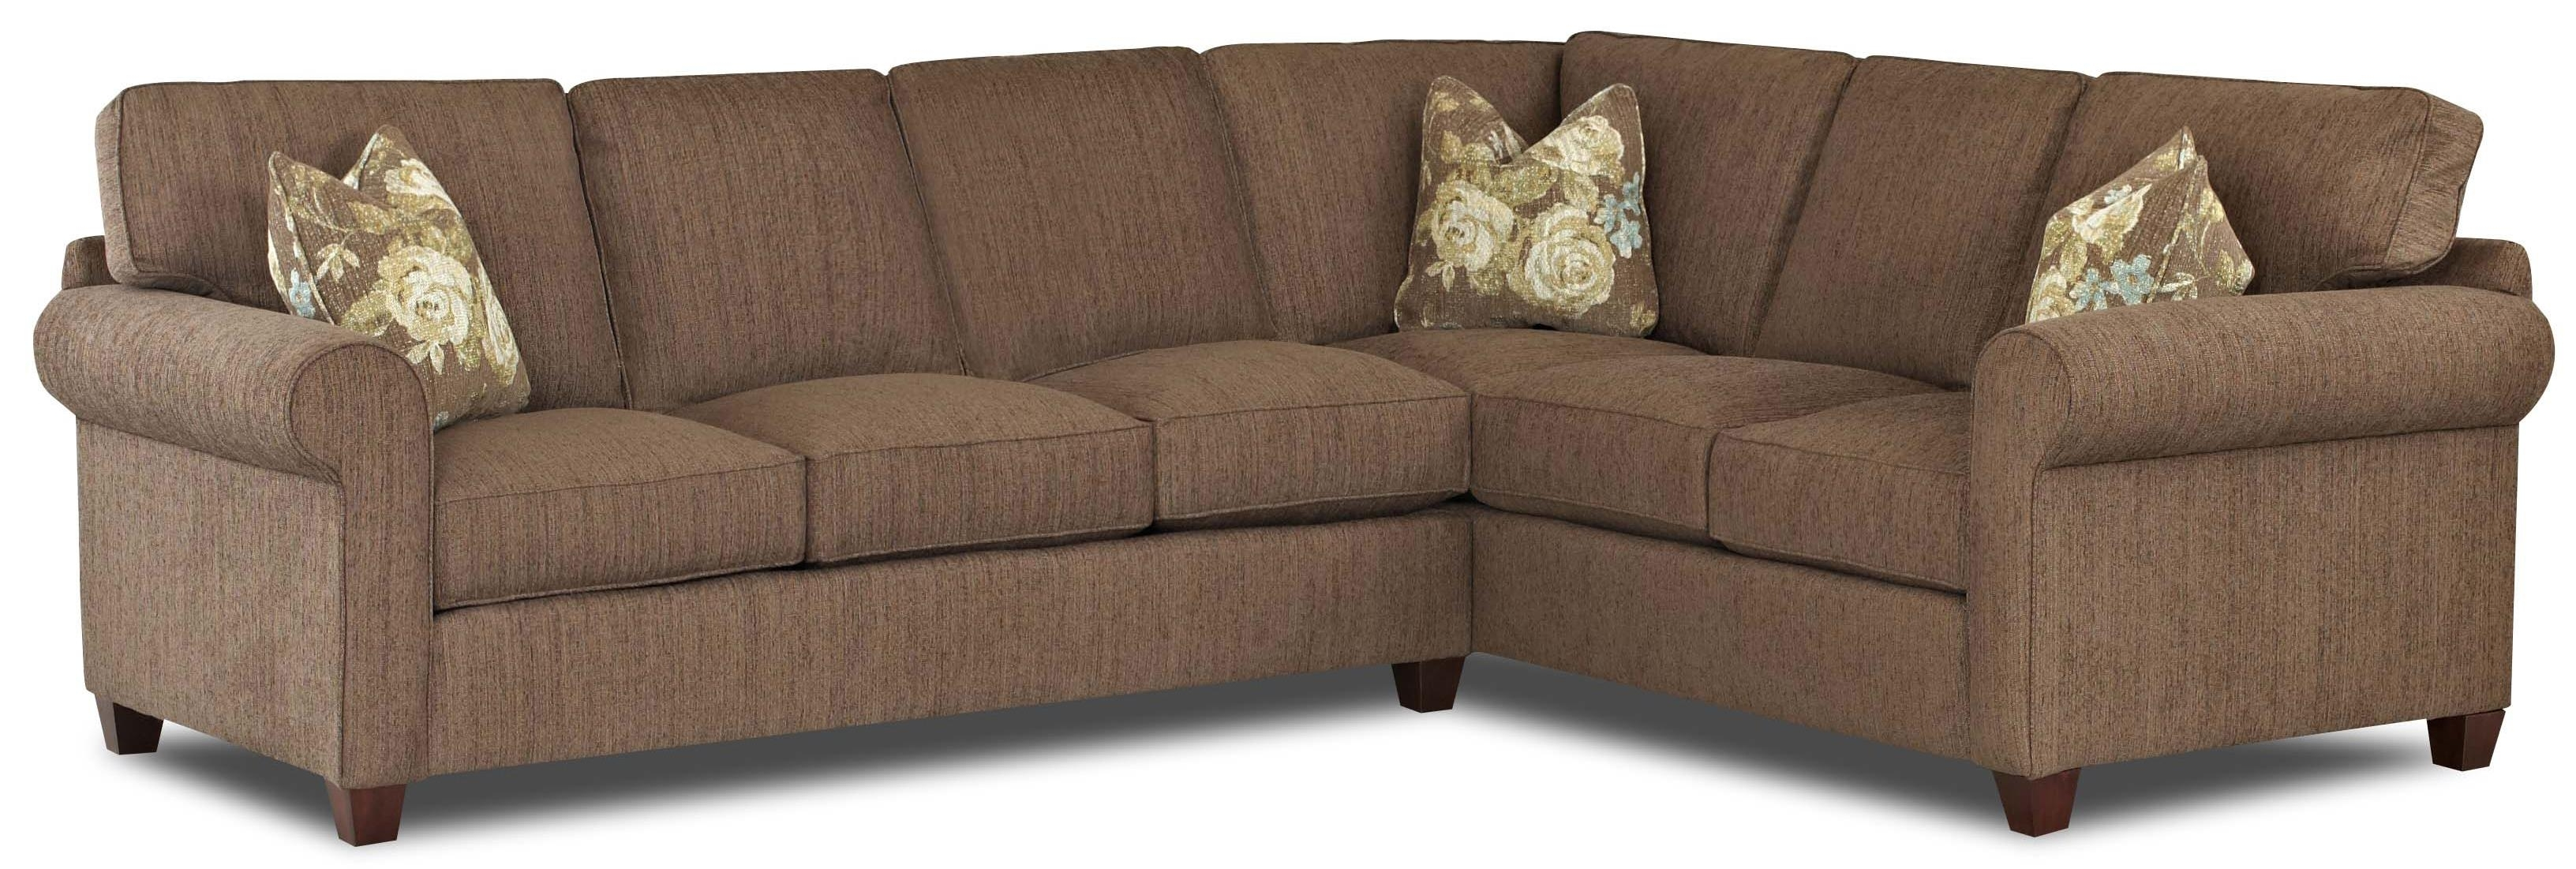 Transitional 2 Piece Sectional Sofa With Weltklaussner (View 17 of 20)